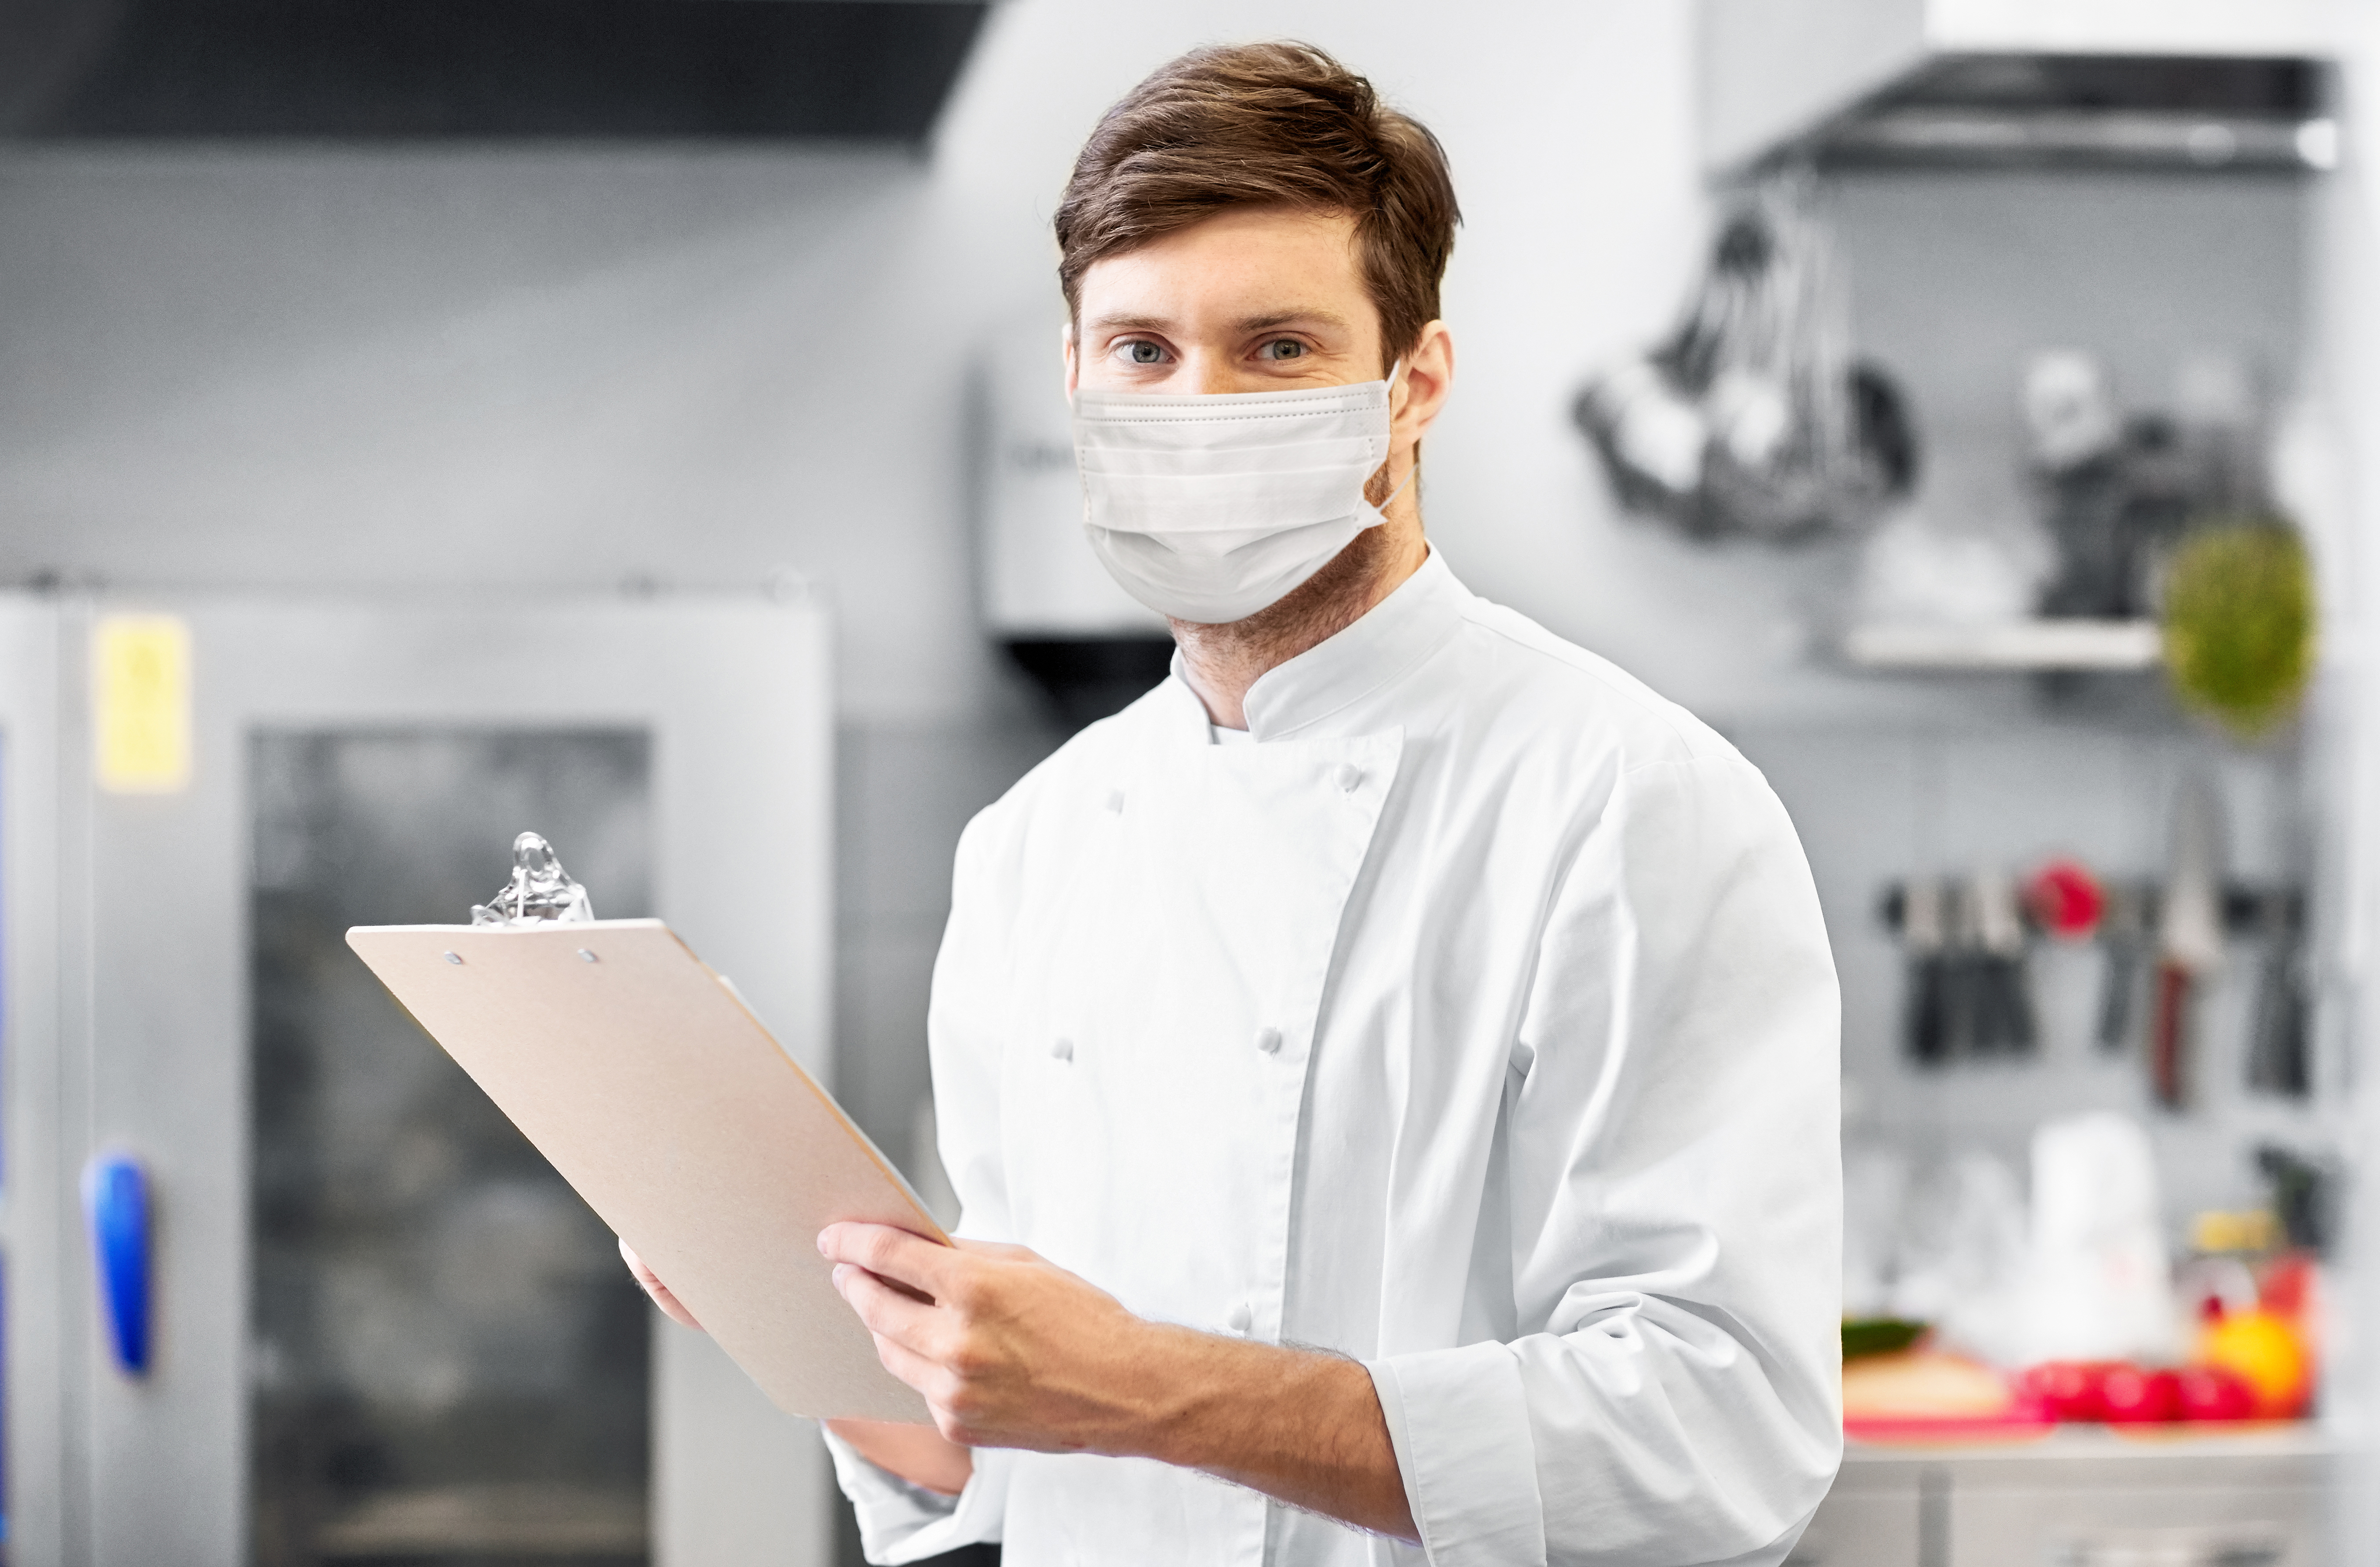 health and safety market research